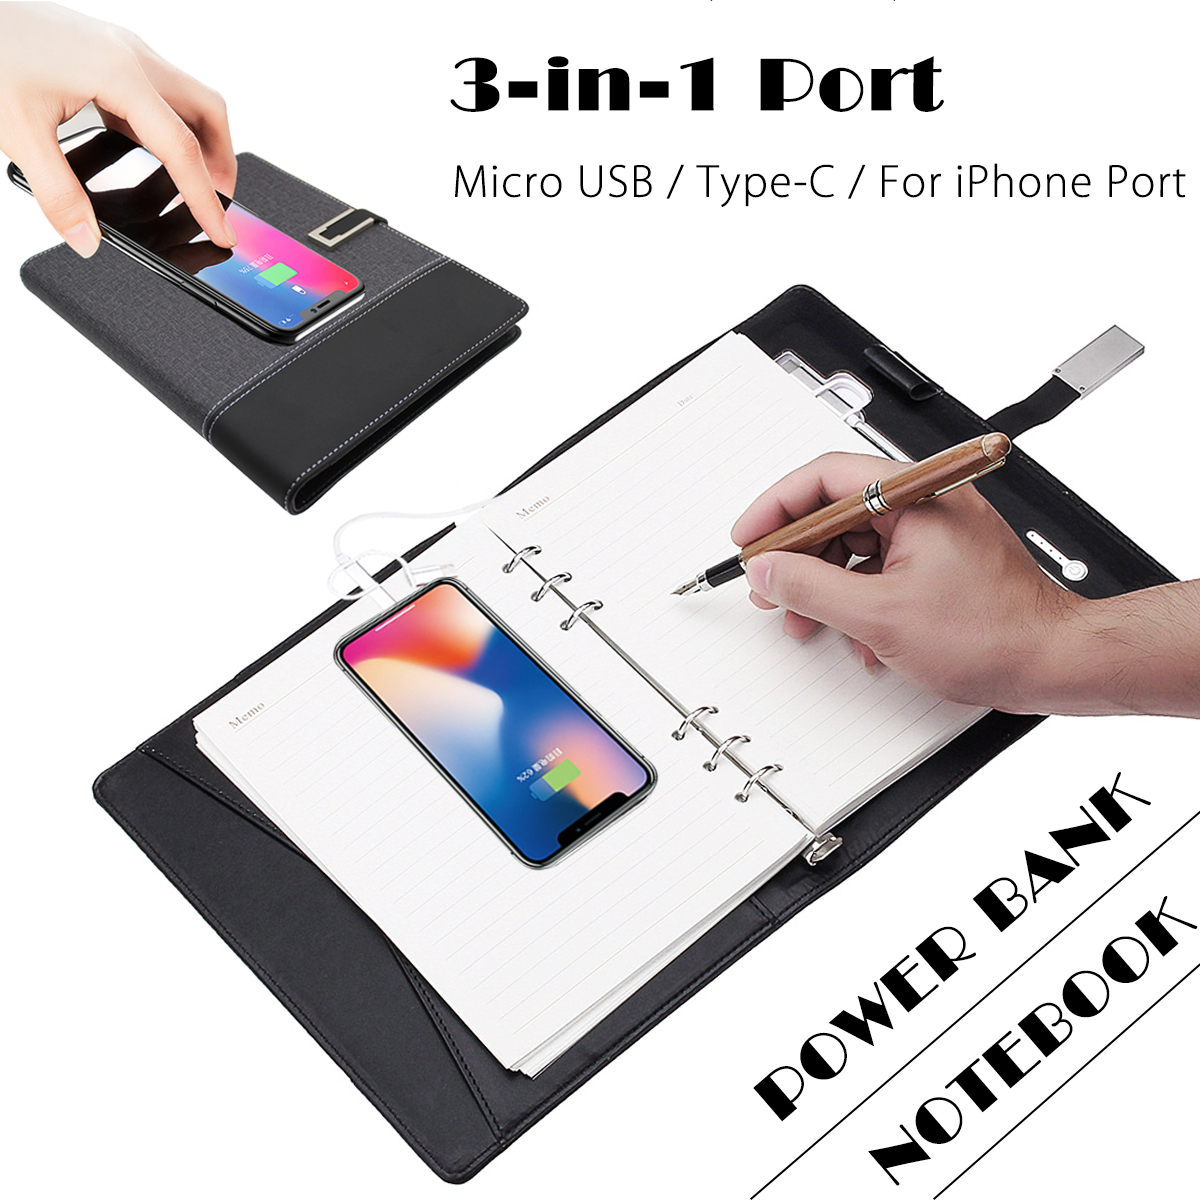 Power Bank Notebook Multi Functional Notebook with 6000 mAh Power Bank Qi Wireless Charging Note Book Binder Spiral Diary Book wp 8000 qi wireless 5000mah mobile power source bank black